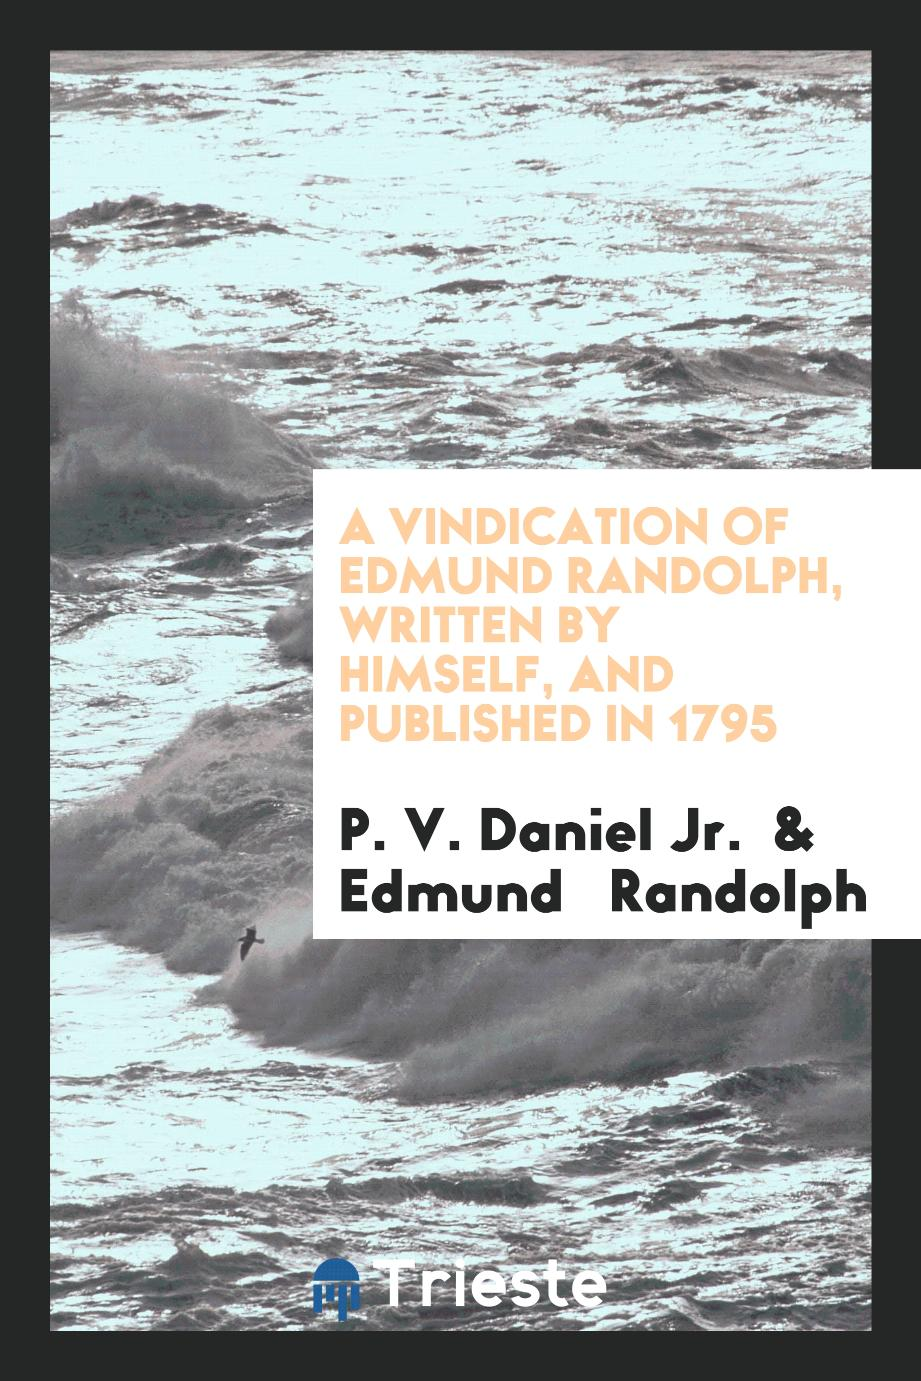 A Vindication of Edmund Randolph, Written by Himself, and Published in 1795